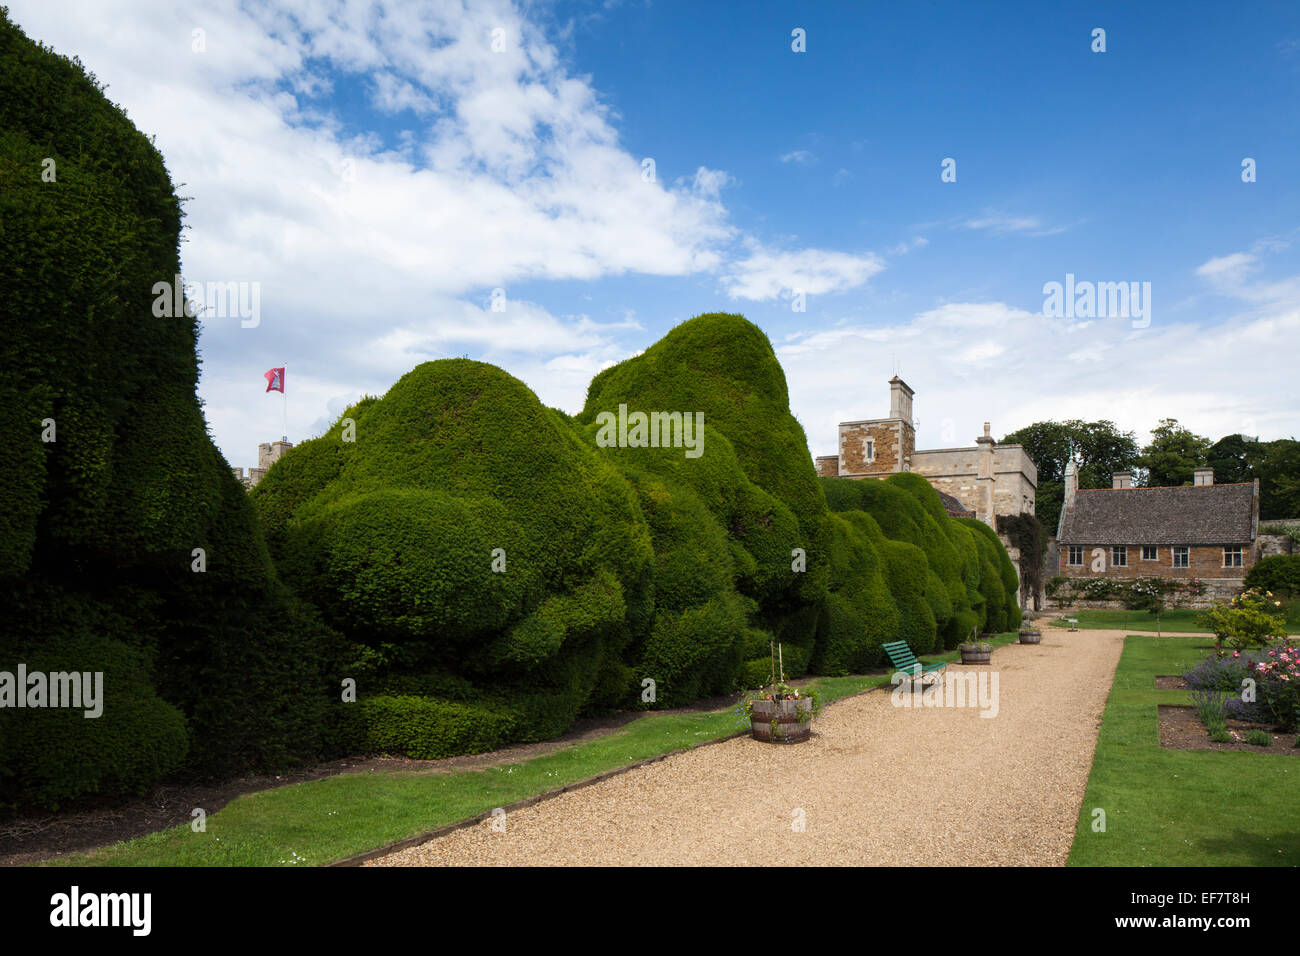 Famous double-yew hedge known as the 'Elephant' hedge in the gardens of Rockingham Castle near Corby, Northamptonshire, Stock Photo